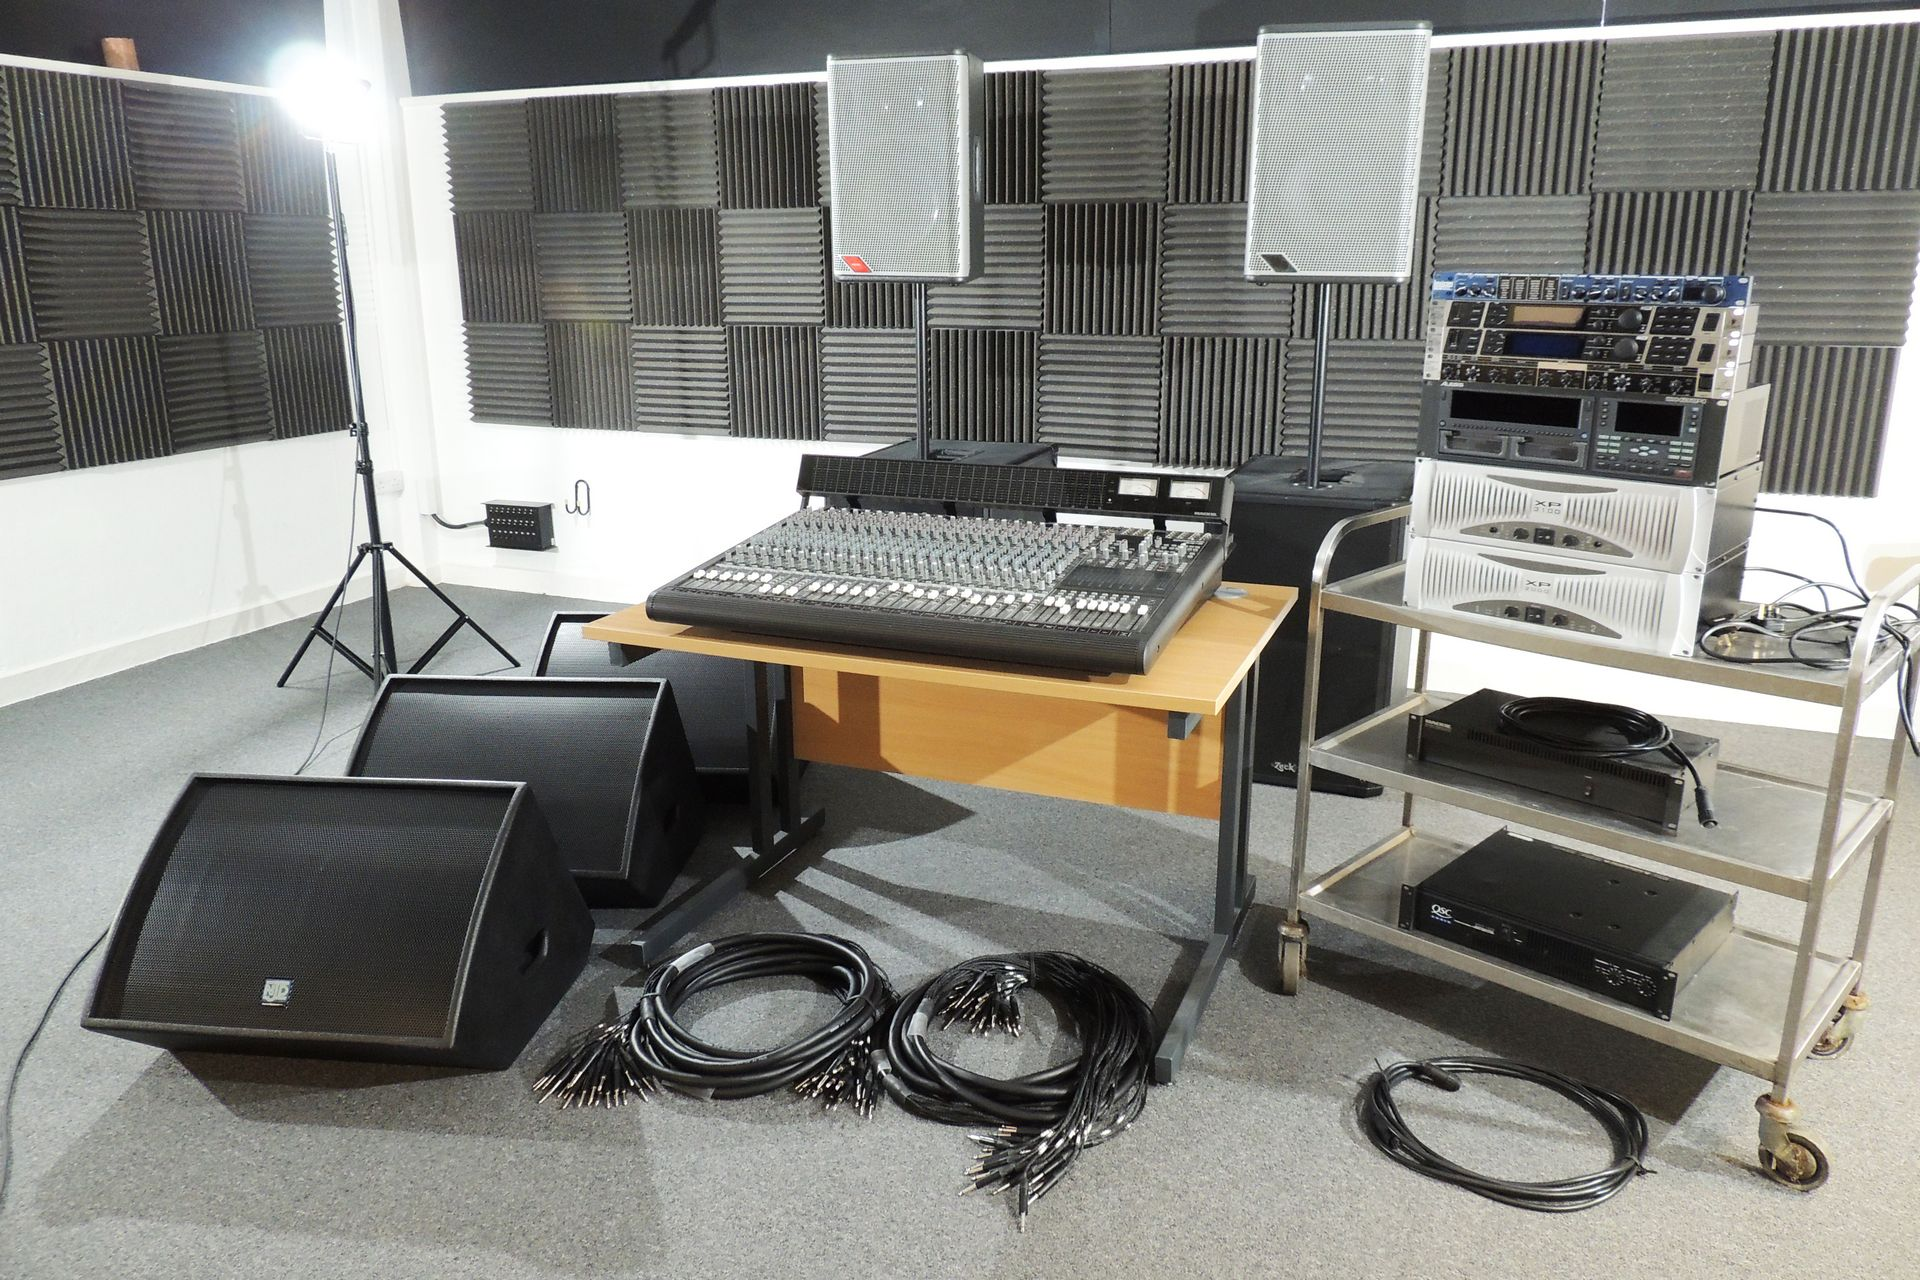 PA SYSTEM – OLD SCHOOL 1.7kW ANALOGUE WITH 24-TRACK RECORDING FACILITY